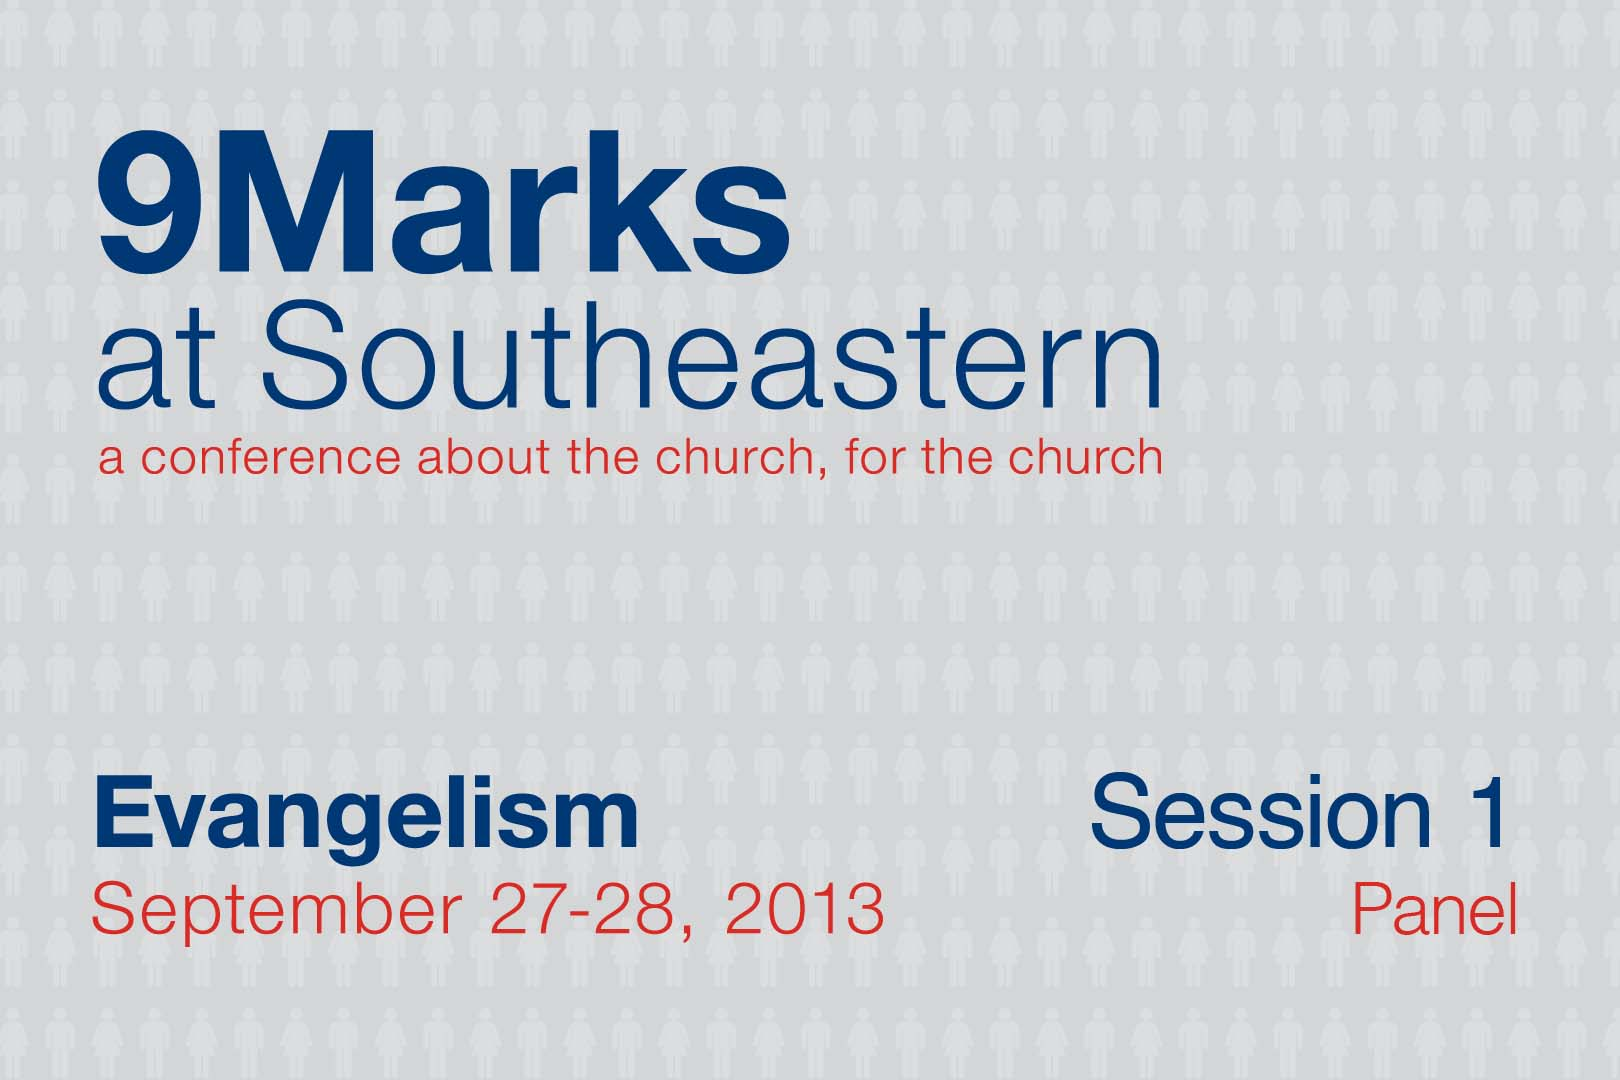 9Marks at Southeastern 2013 – Evangelism: Session 1 Panel